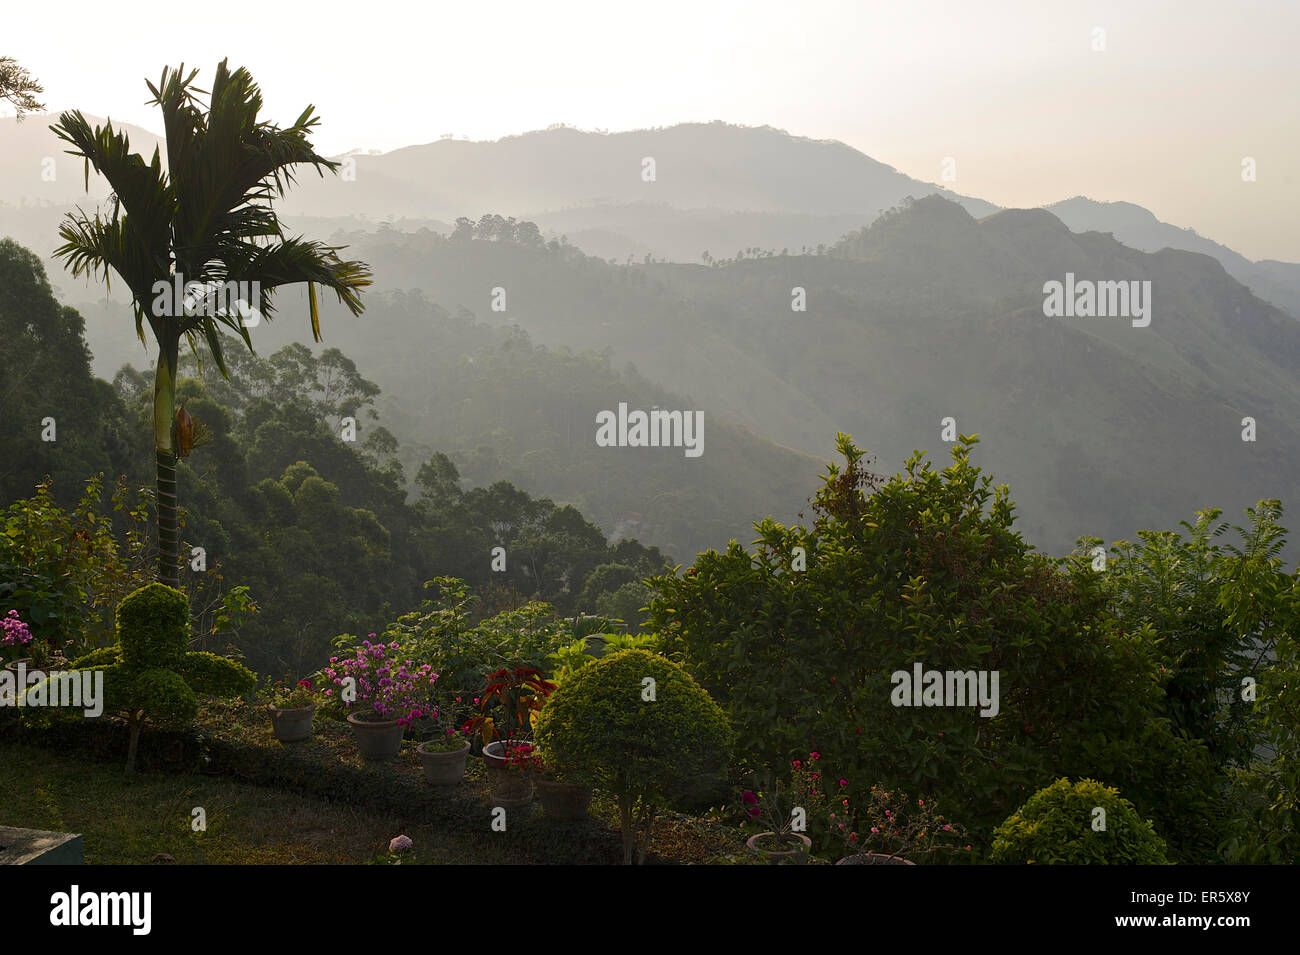 View from a garden over the hills at Ella, hill county, Sri Lanka Stock Photo